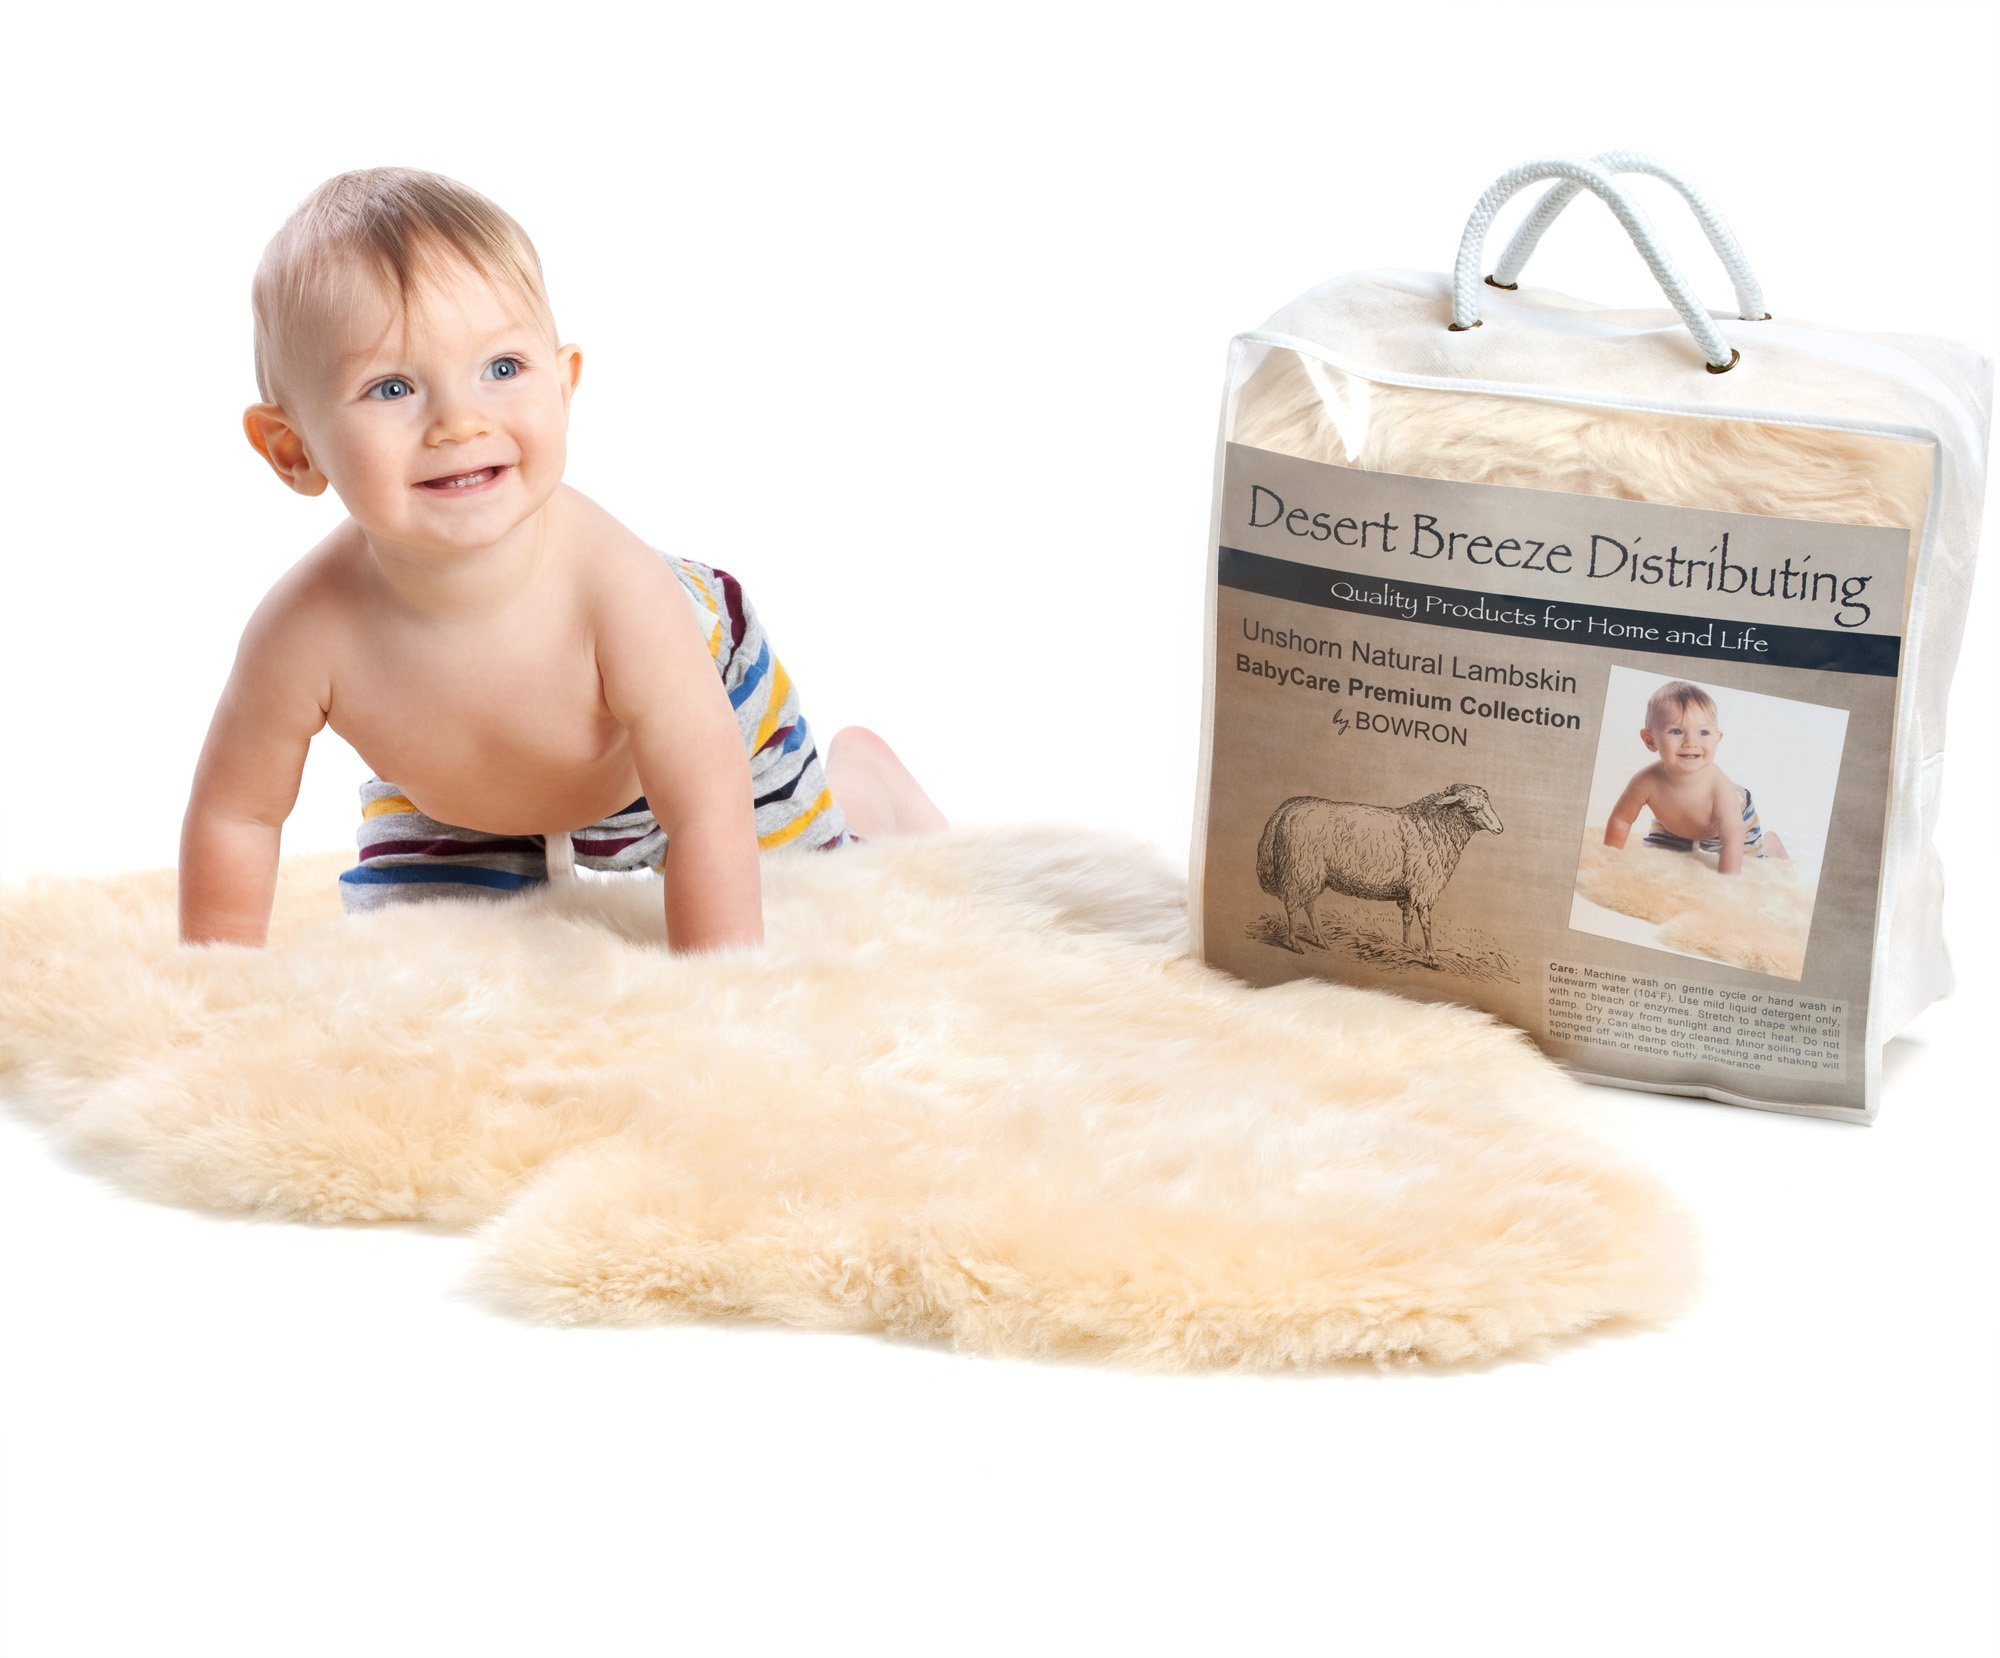 New Zealand Lambskin Baby Rug, Cream Color, Soft Natural Length Fleece, 100% Natural, Oeko-Tex Certified Safe, Premium Sheepskin, Large Size 34'' to 36'' Length, by Desert Breeze Distributing